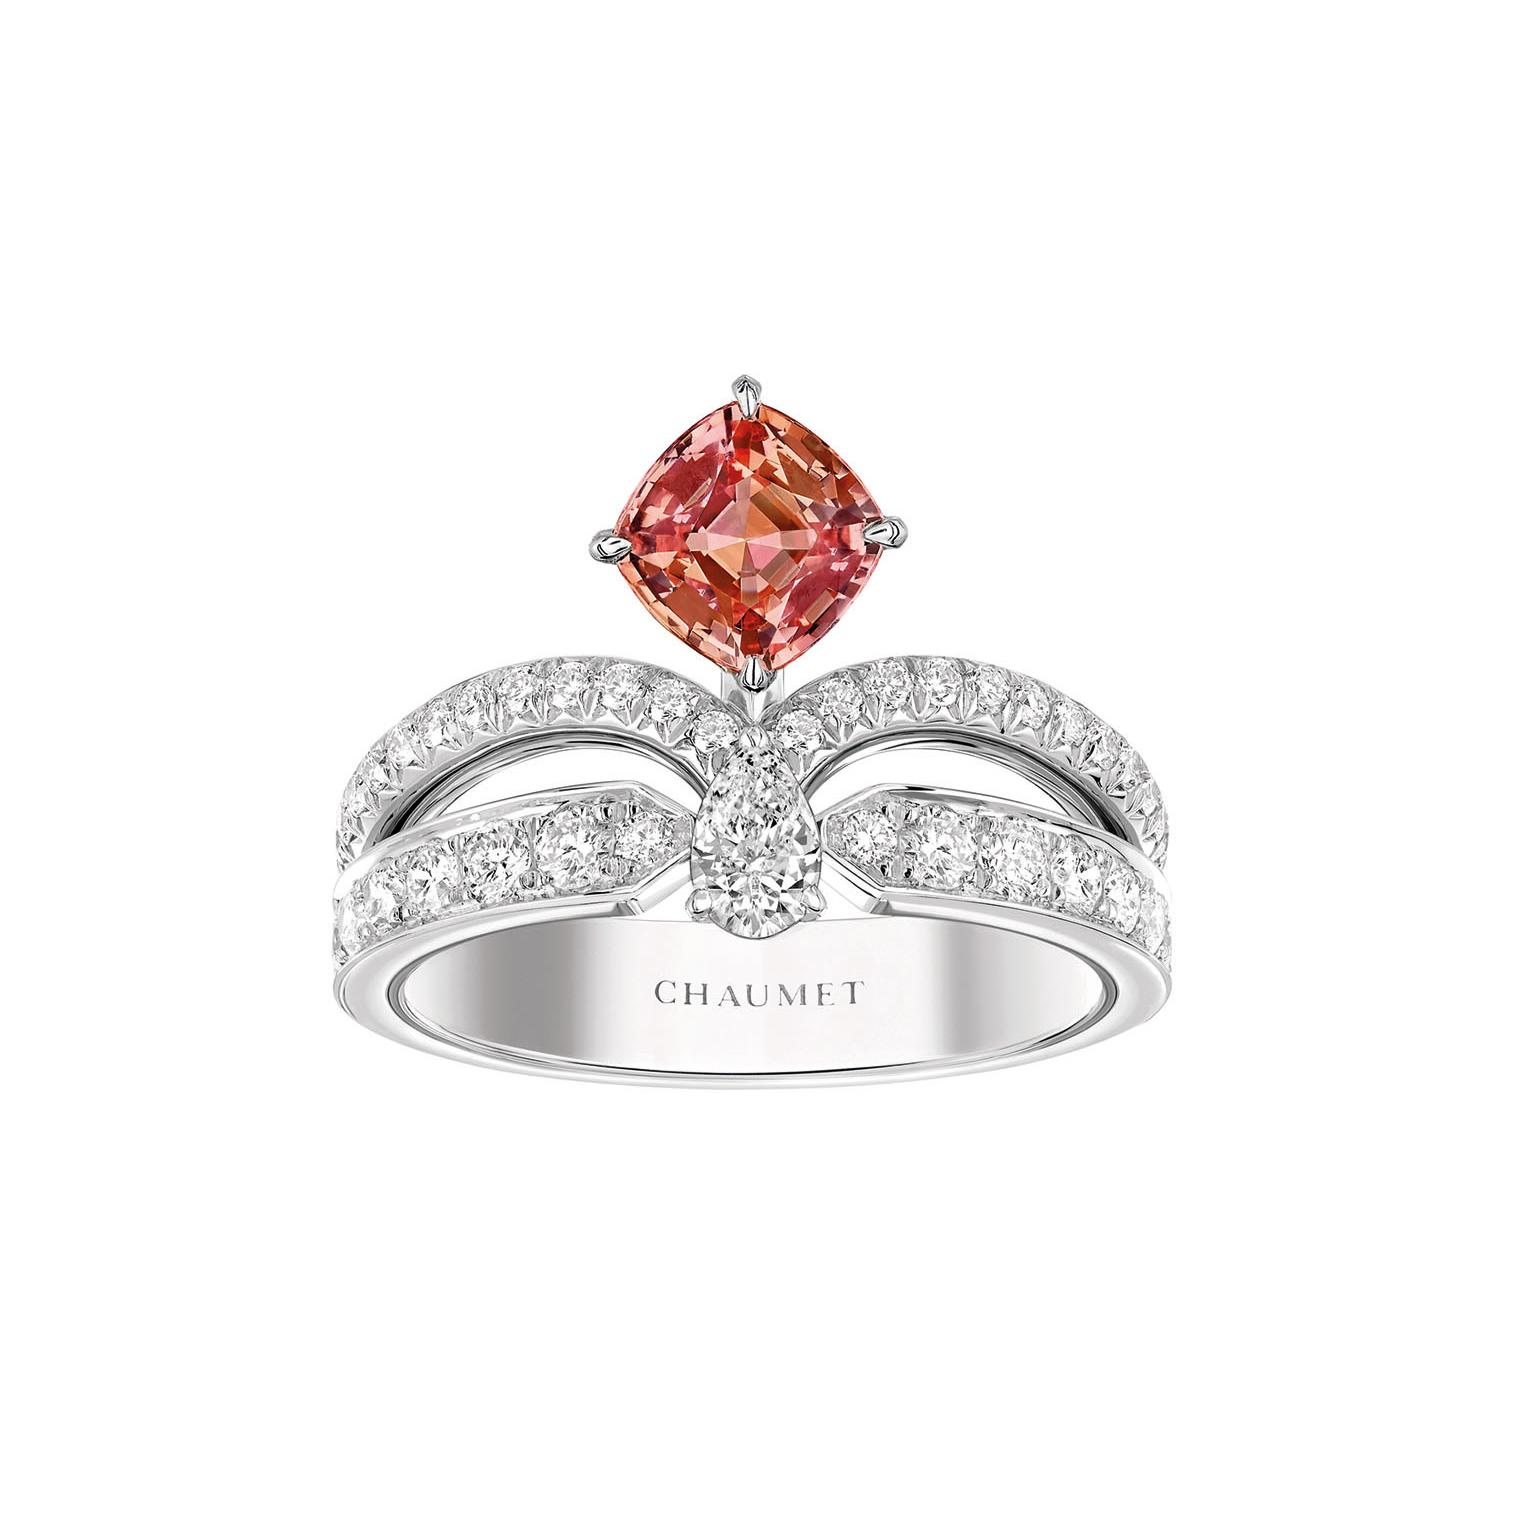 gem precious unheated lankan pad oval sapphire of padparadscha heated srilankan un color cushion feature gems sri